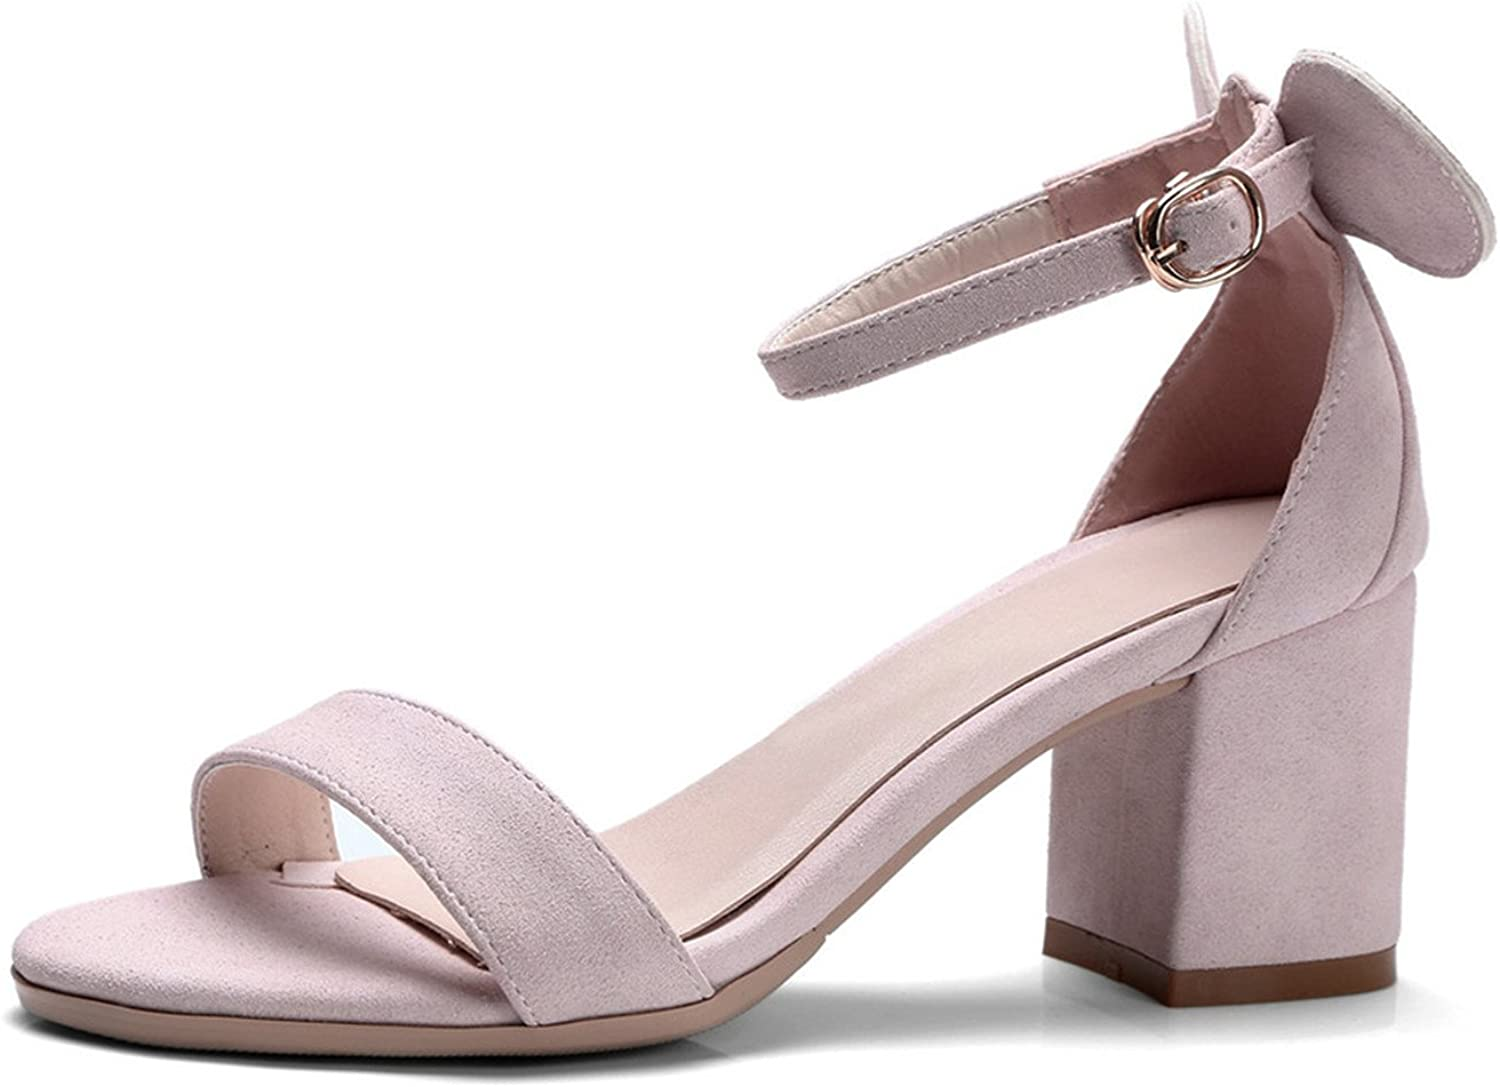 Twinkle UU Sandals Square High Heel Sandals Sweet Bow Platform Women shoes Summer Ankle Strap shoes